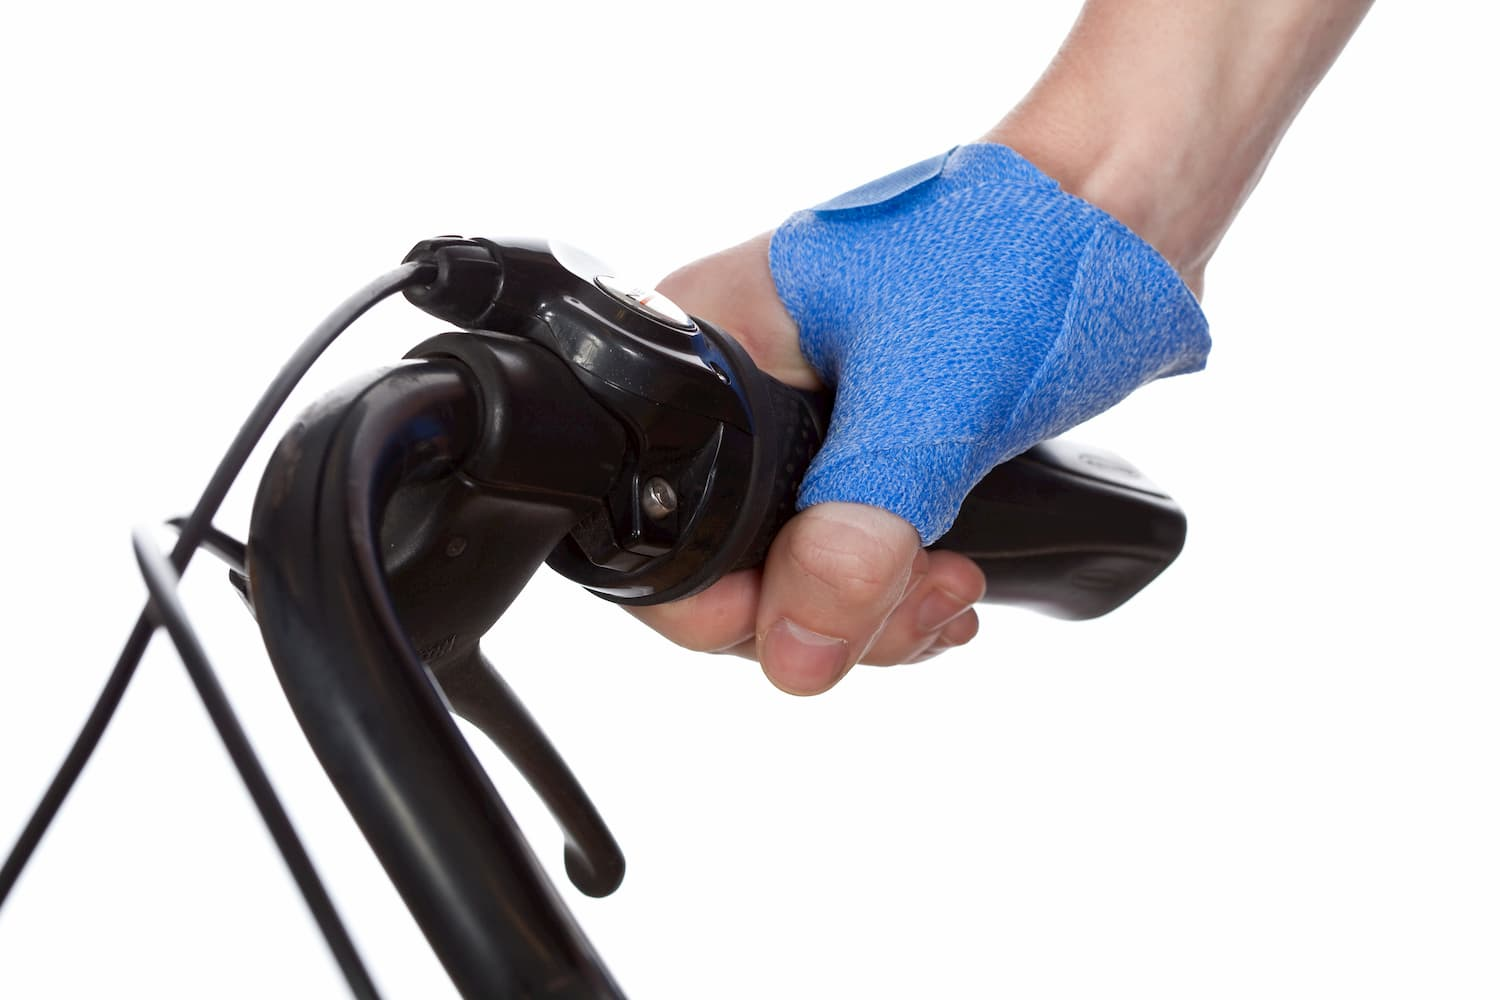 Short thumb opponens orthosis and bicycle